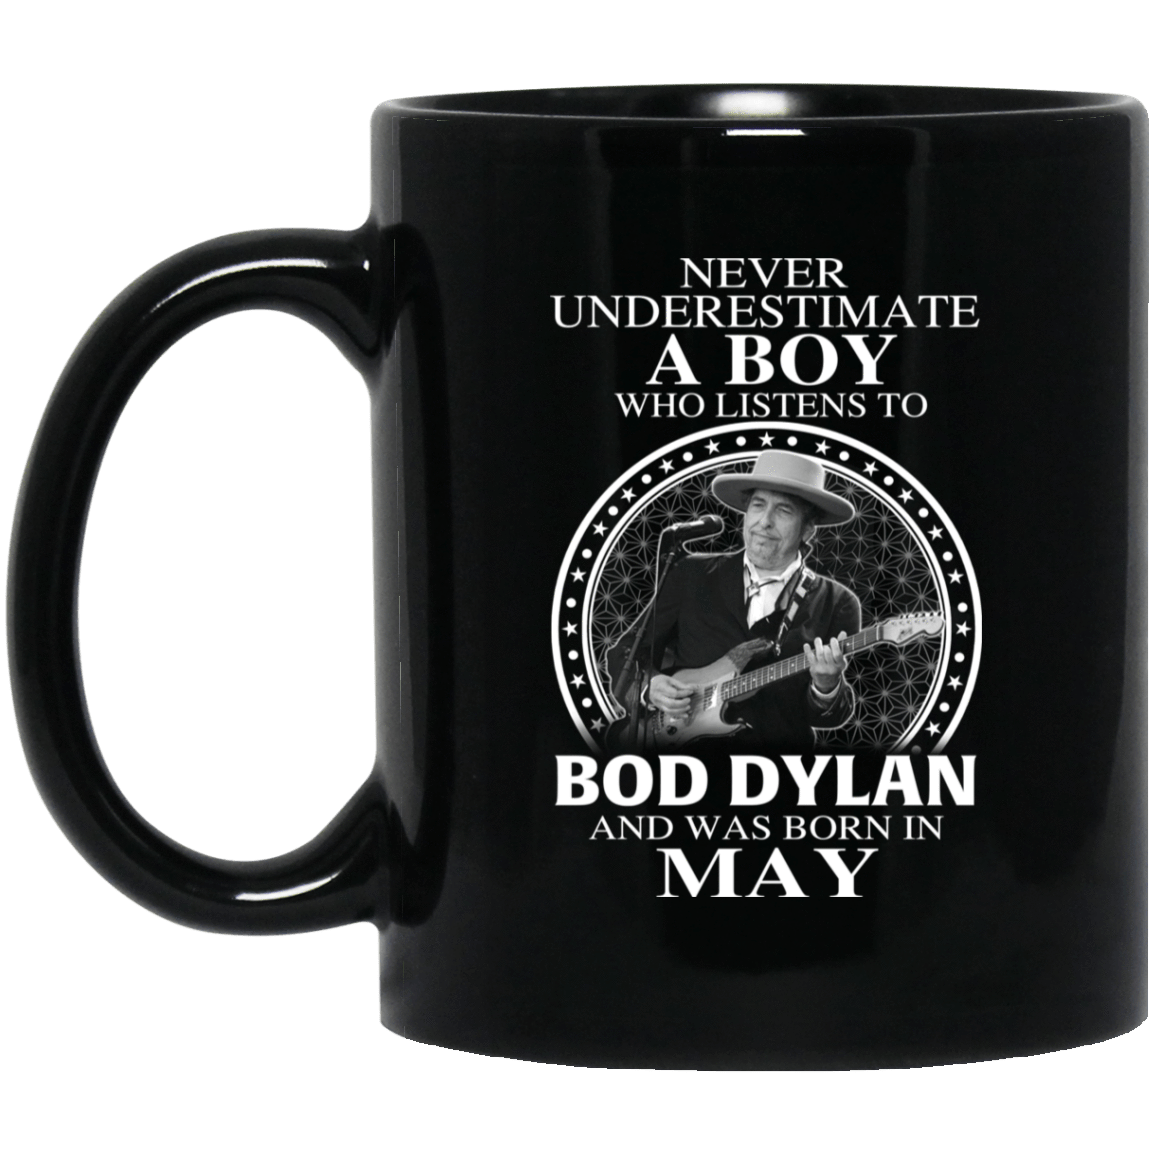 A Boy Who Listens To Bob Dylan And Was Born In May Mug 1065-10181-76154916-49307 - Tee Ript